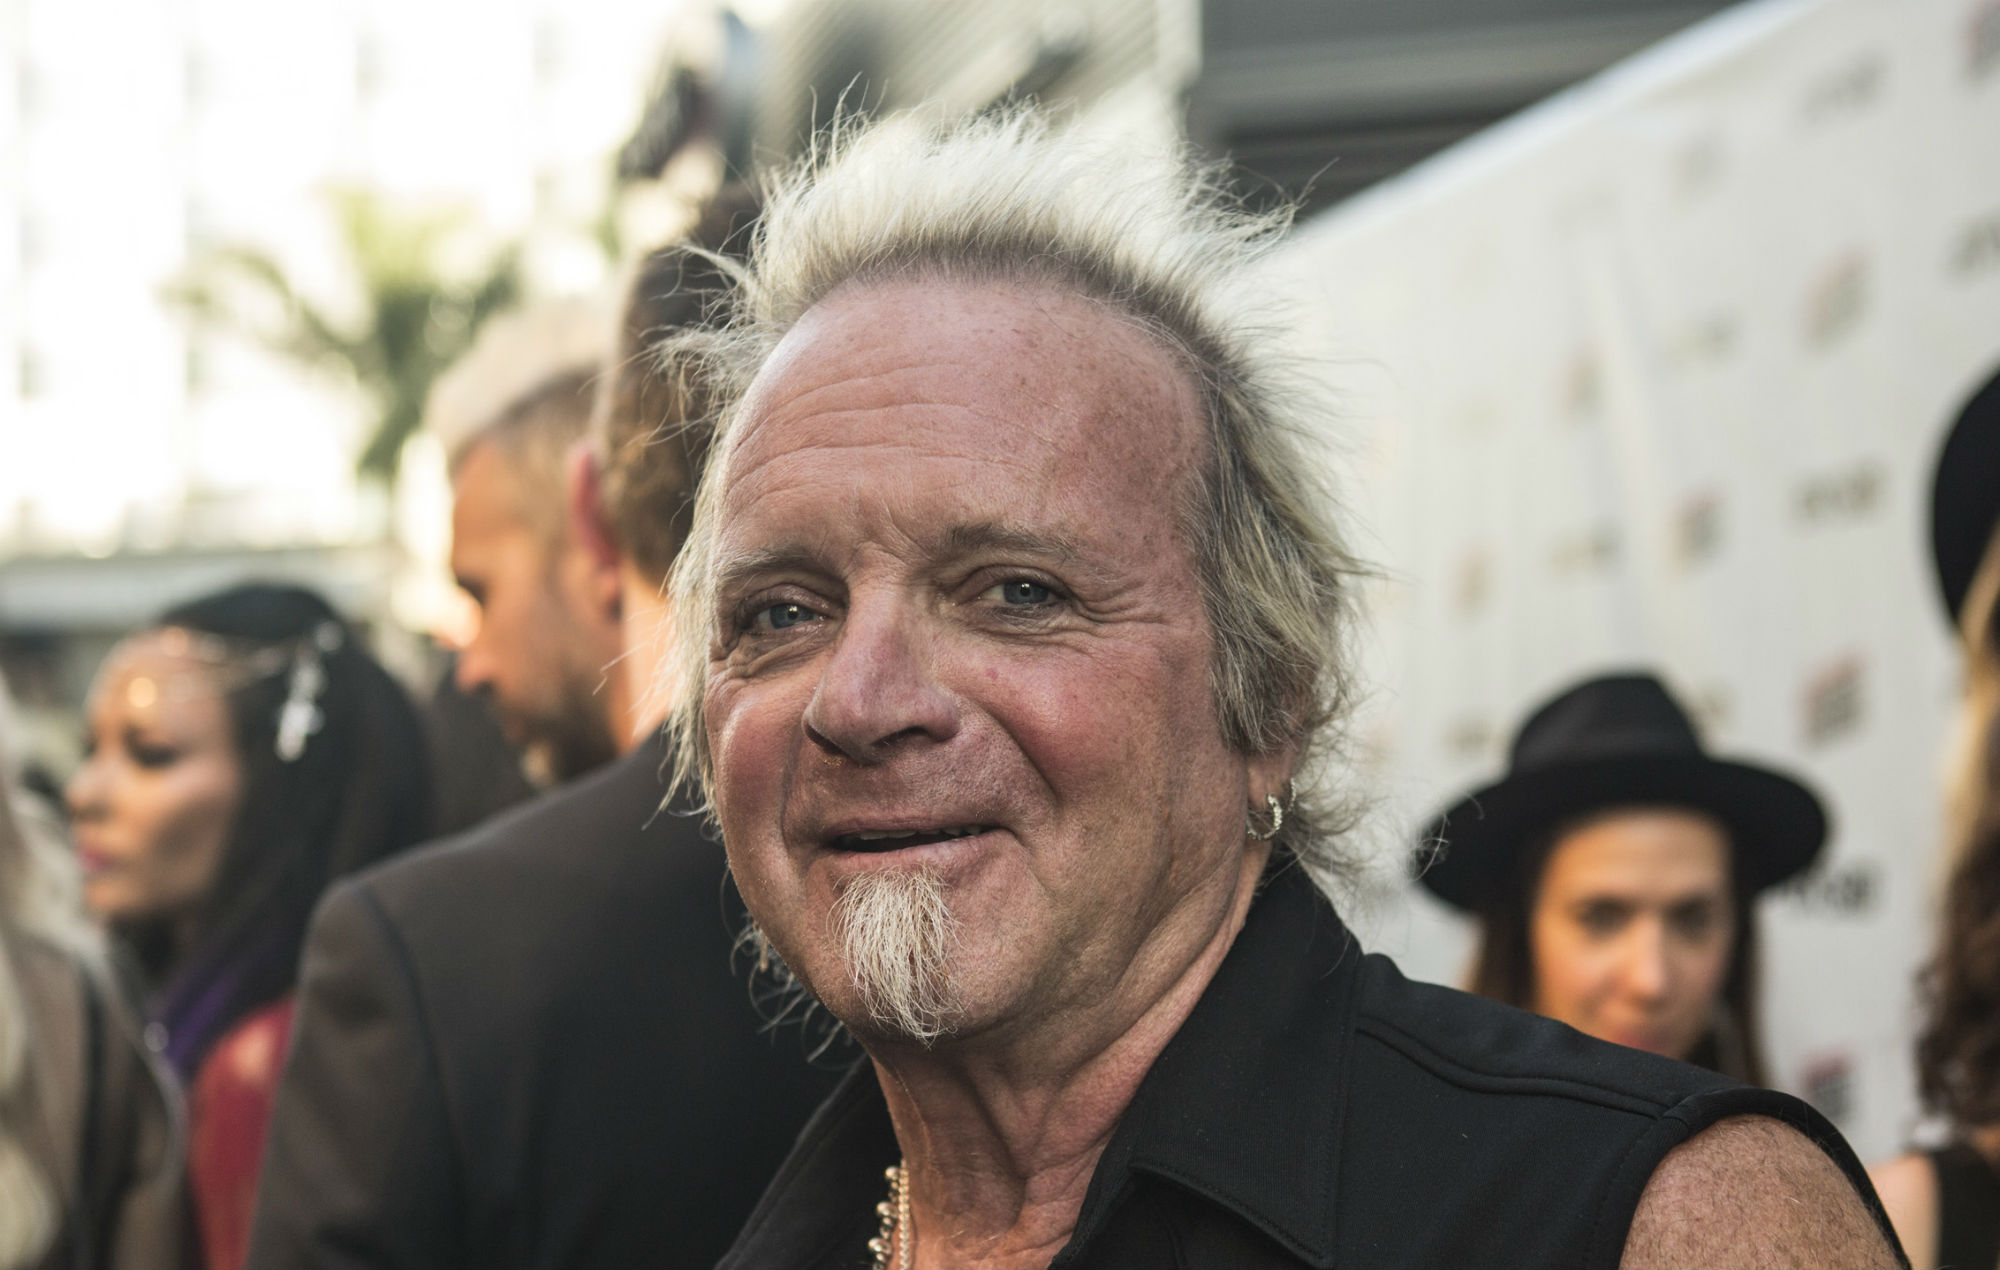 Aerosmith drummer Joey Kramer is suing the band following exclusion claims